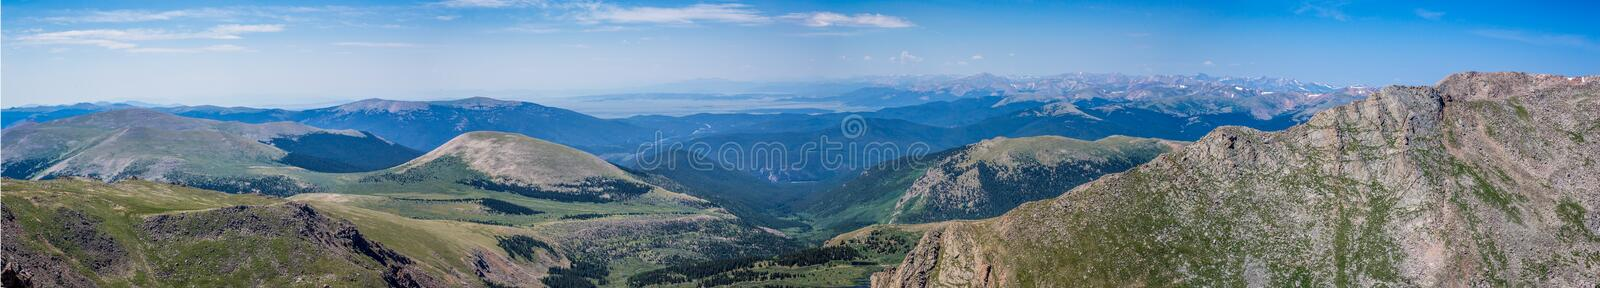 Panorama of view from Mount Evans at 14,000 feet stock image